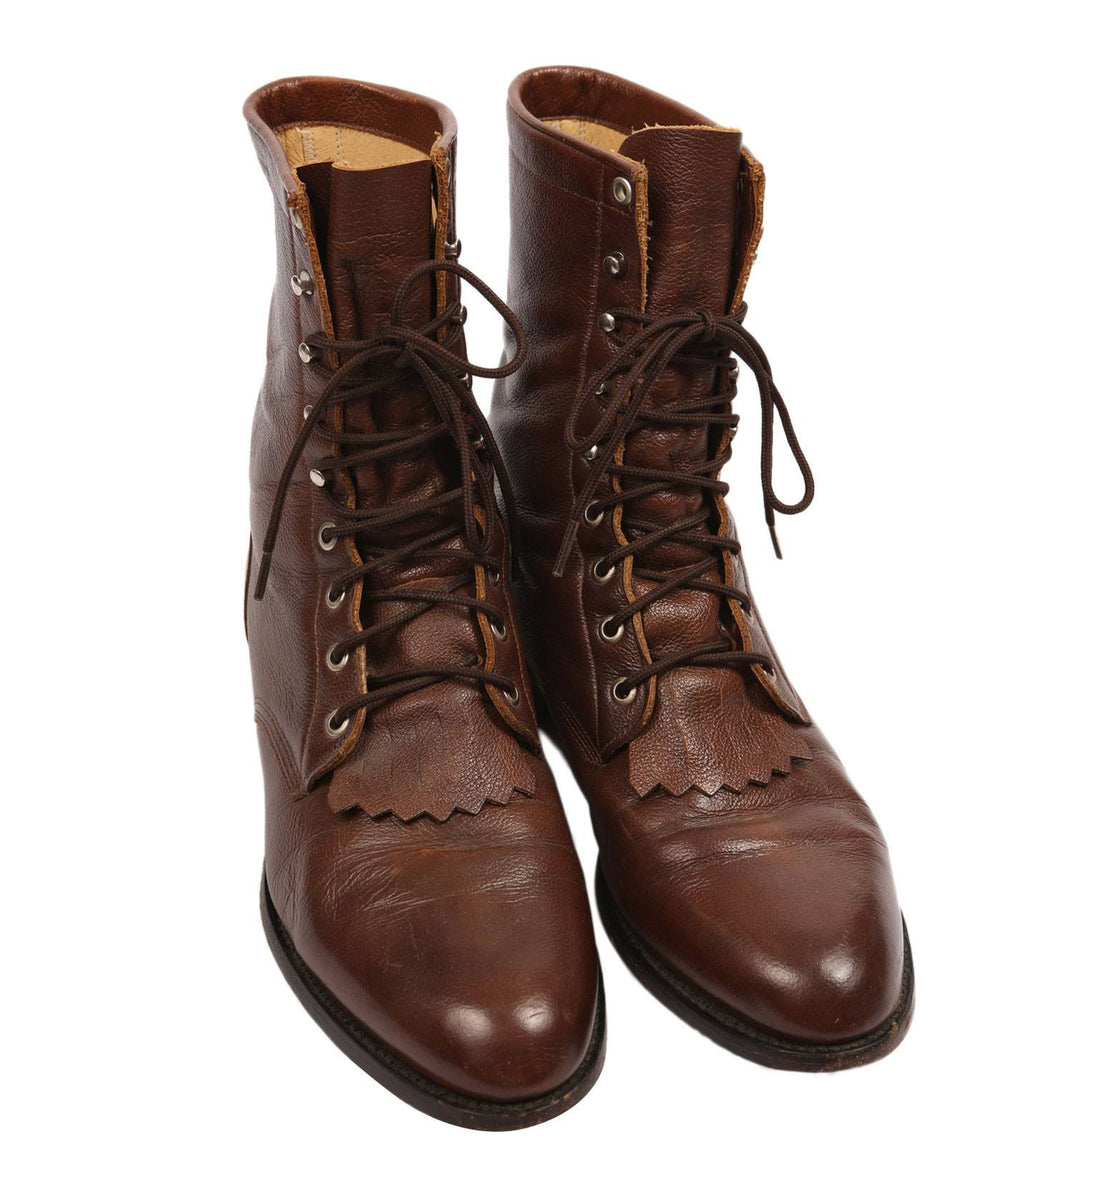 Vintage Walnut Leather Justin Boots - Vintage: Men's: Shoes - Iron and Resin